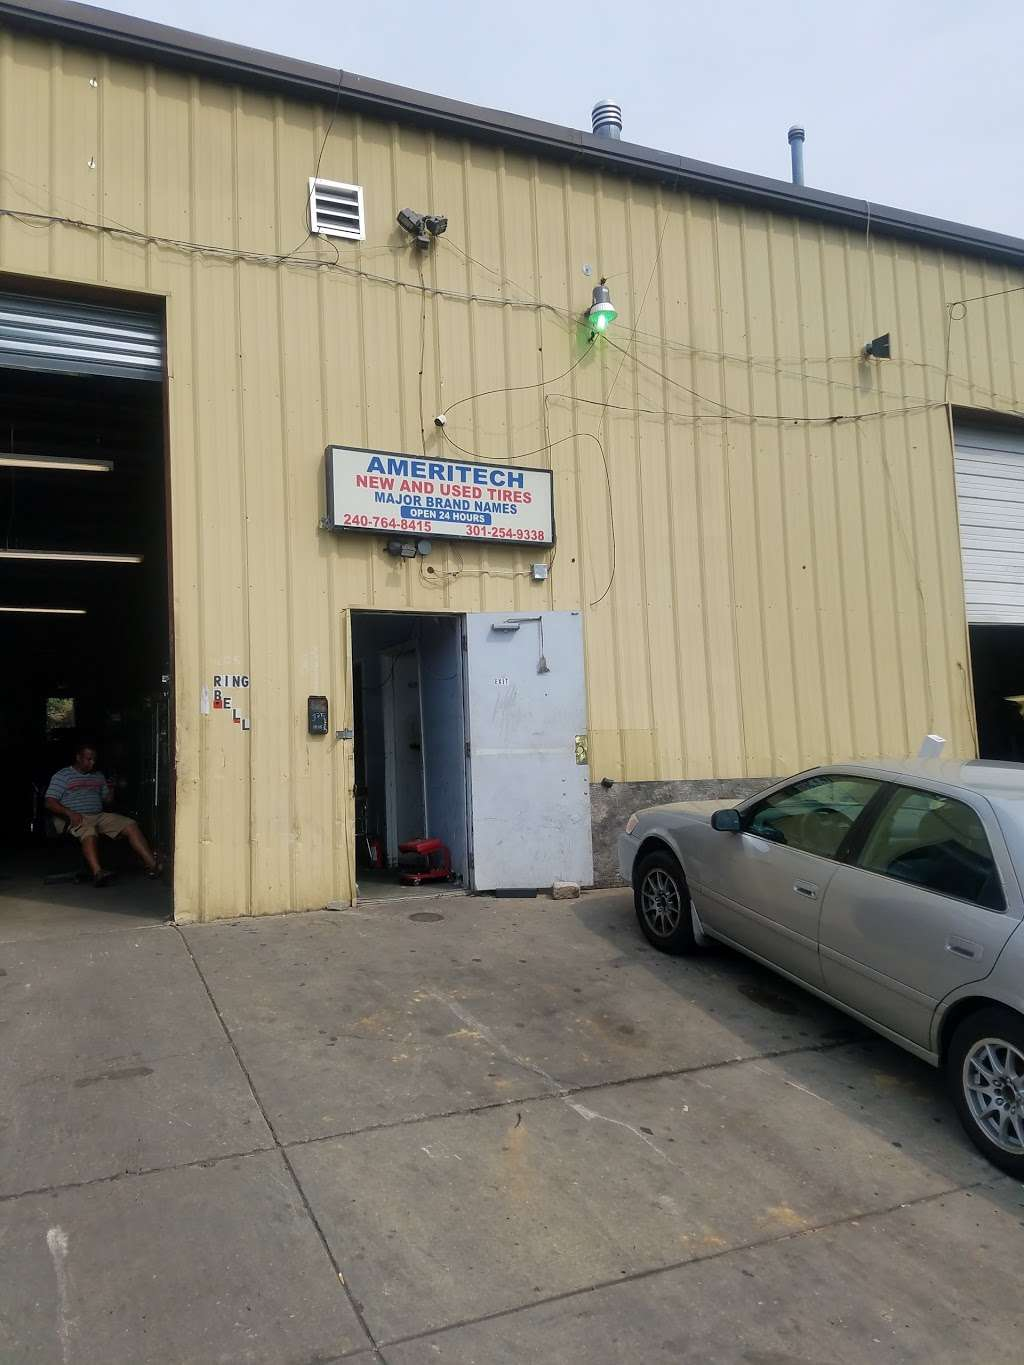 Ameritech Tire Inc. New & Used tires..24hrs tireshop - car repair  | Photo 3 of 10 | Address: 1205 Marblewood Ave, Capitol Heights, MD 20743, USA | Phone: (240) 764-8415